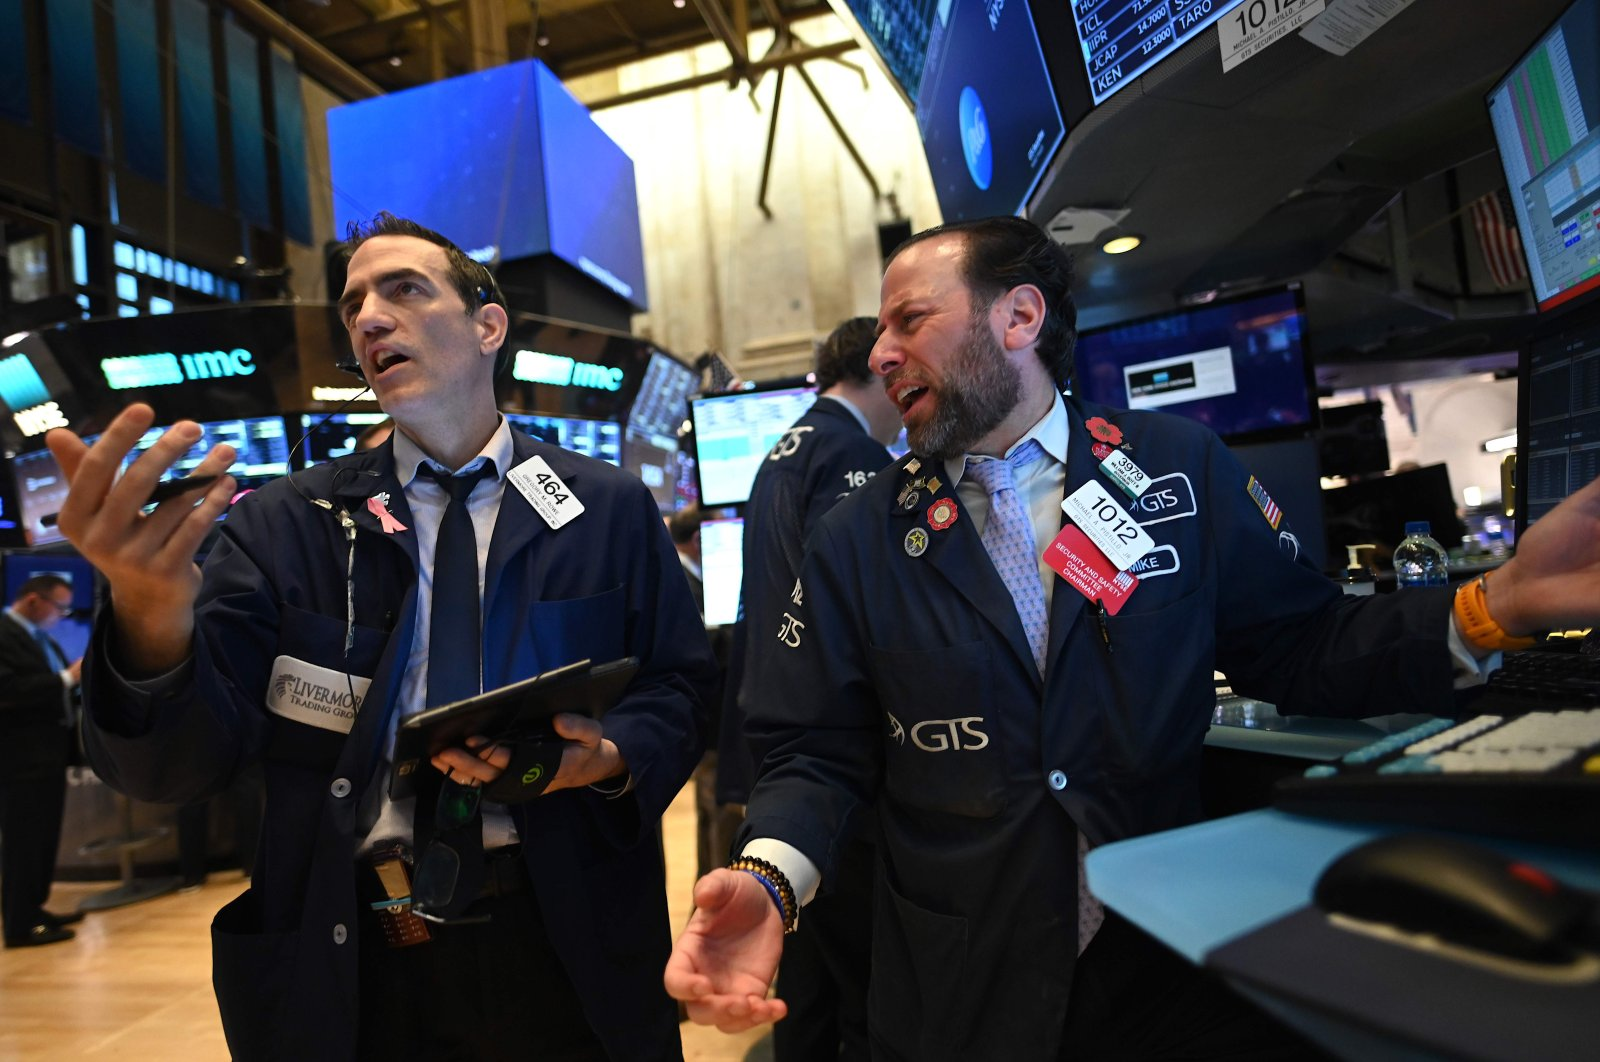 Traders work during the opening bell at the New York Stock Exchange, New York City, U.S., Monday, March 16, 2020. (AFP Photo)